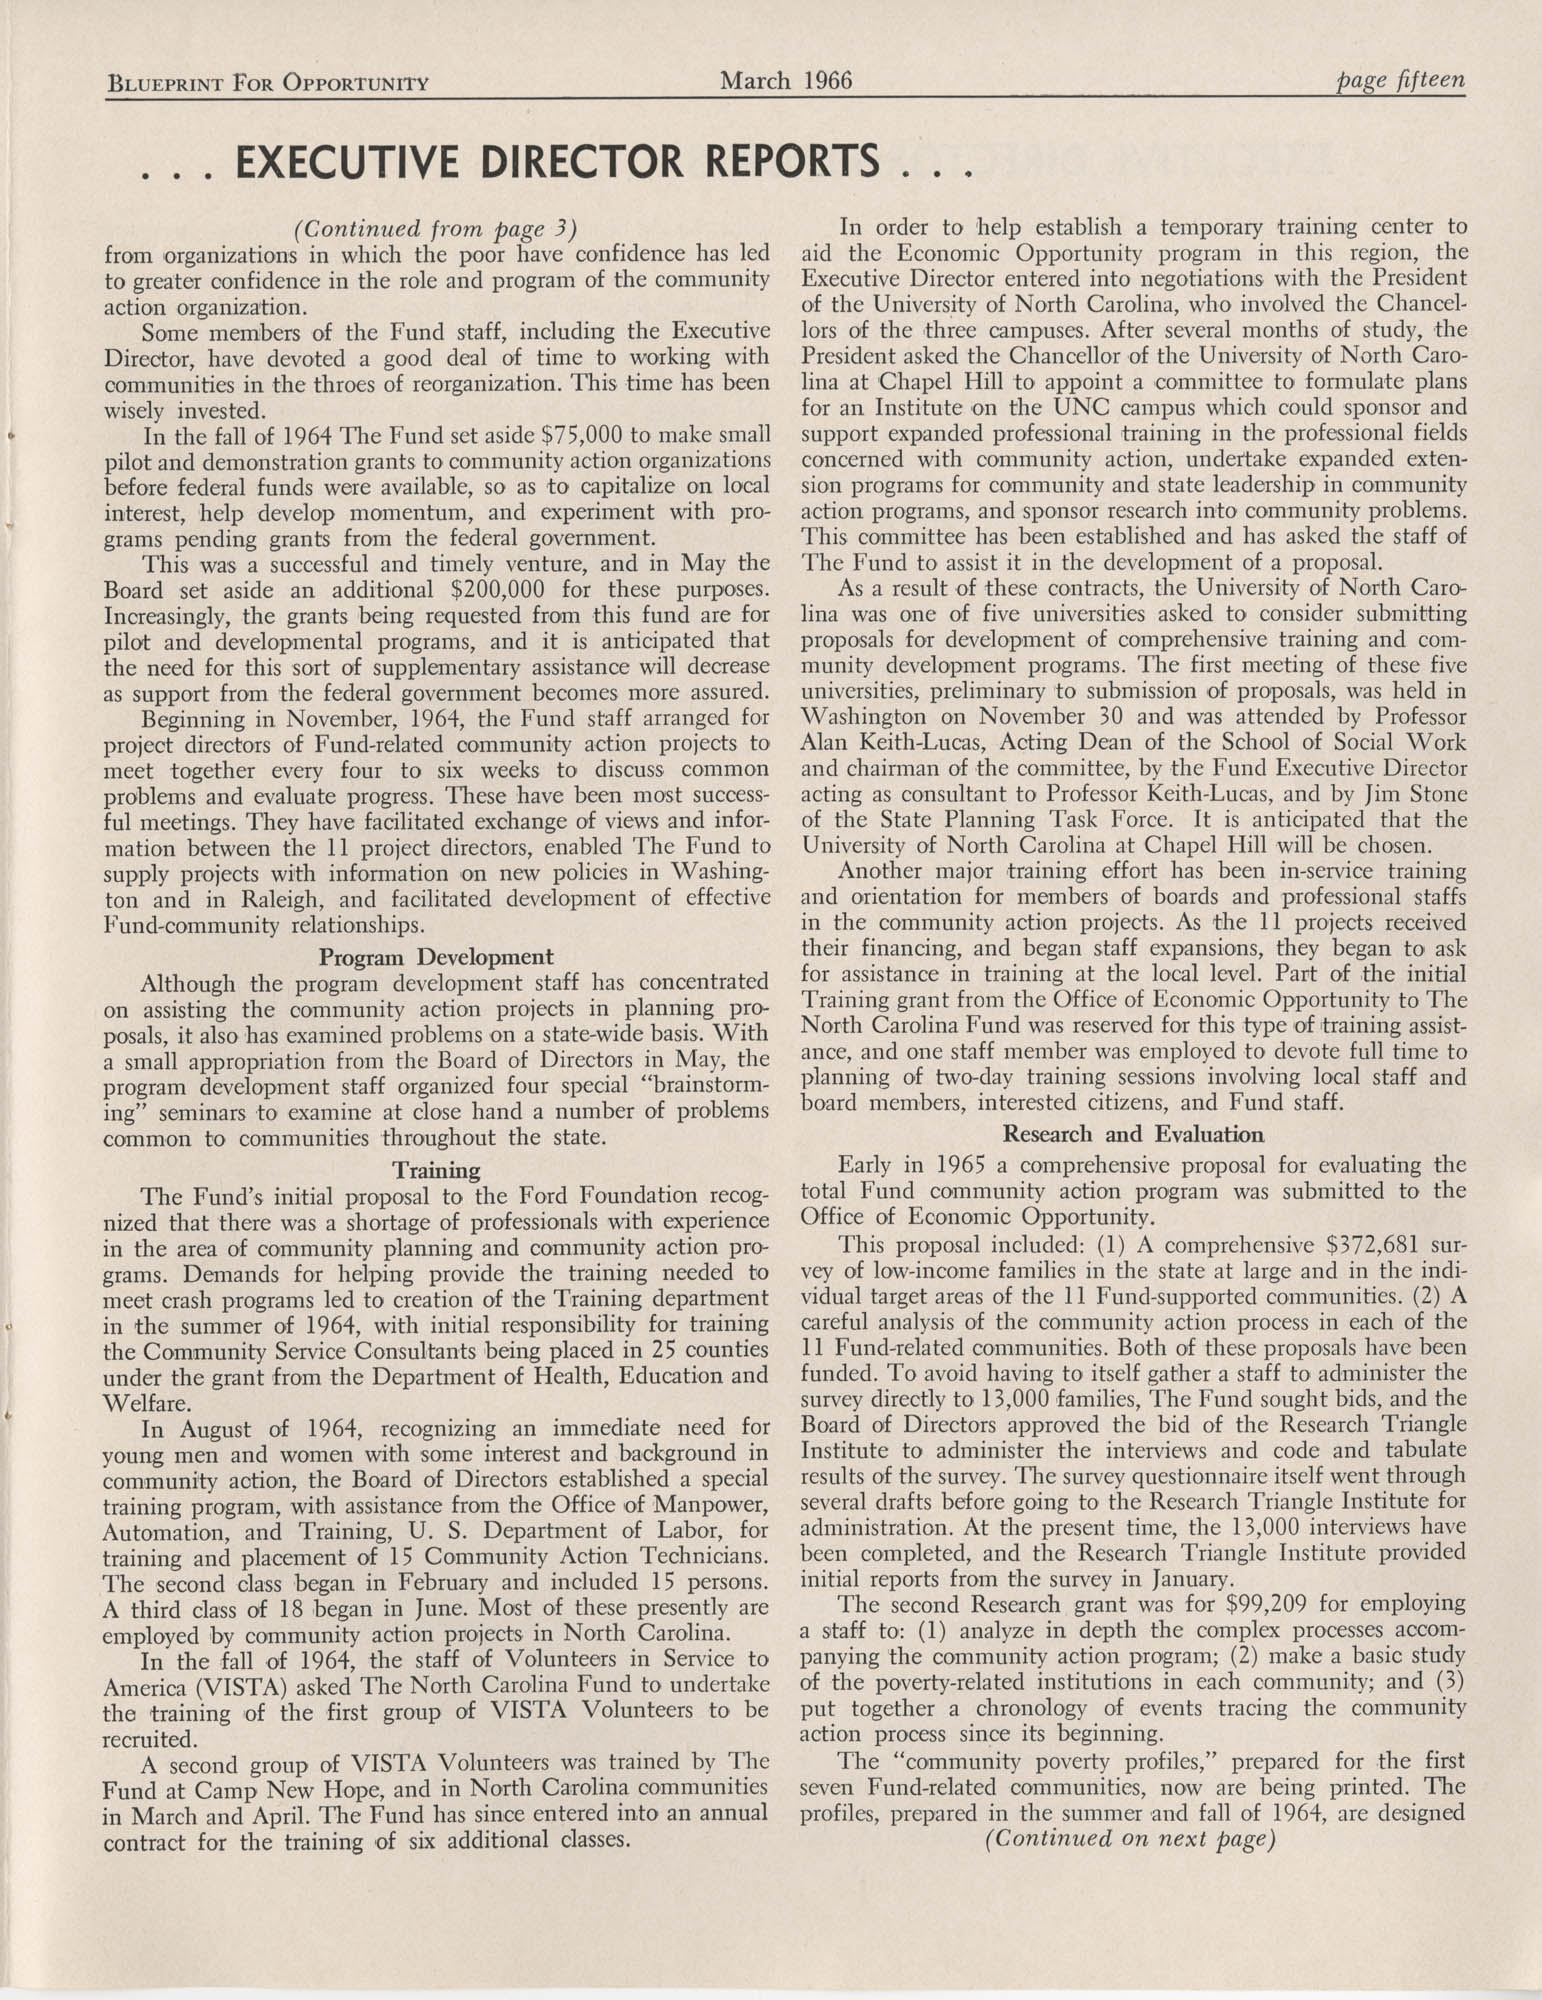 Blueprint for Opportunity, Vol. 2, No. 1, Page 15